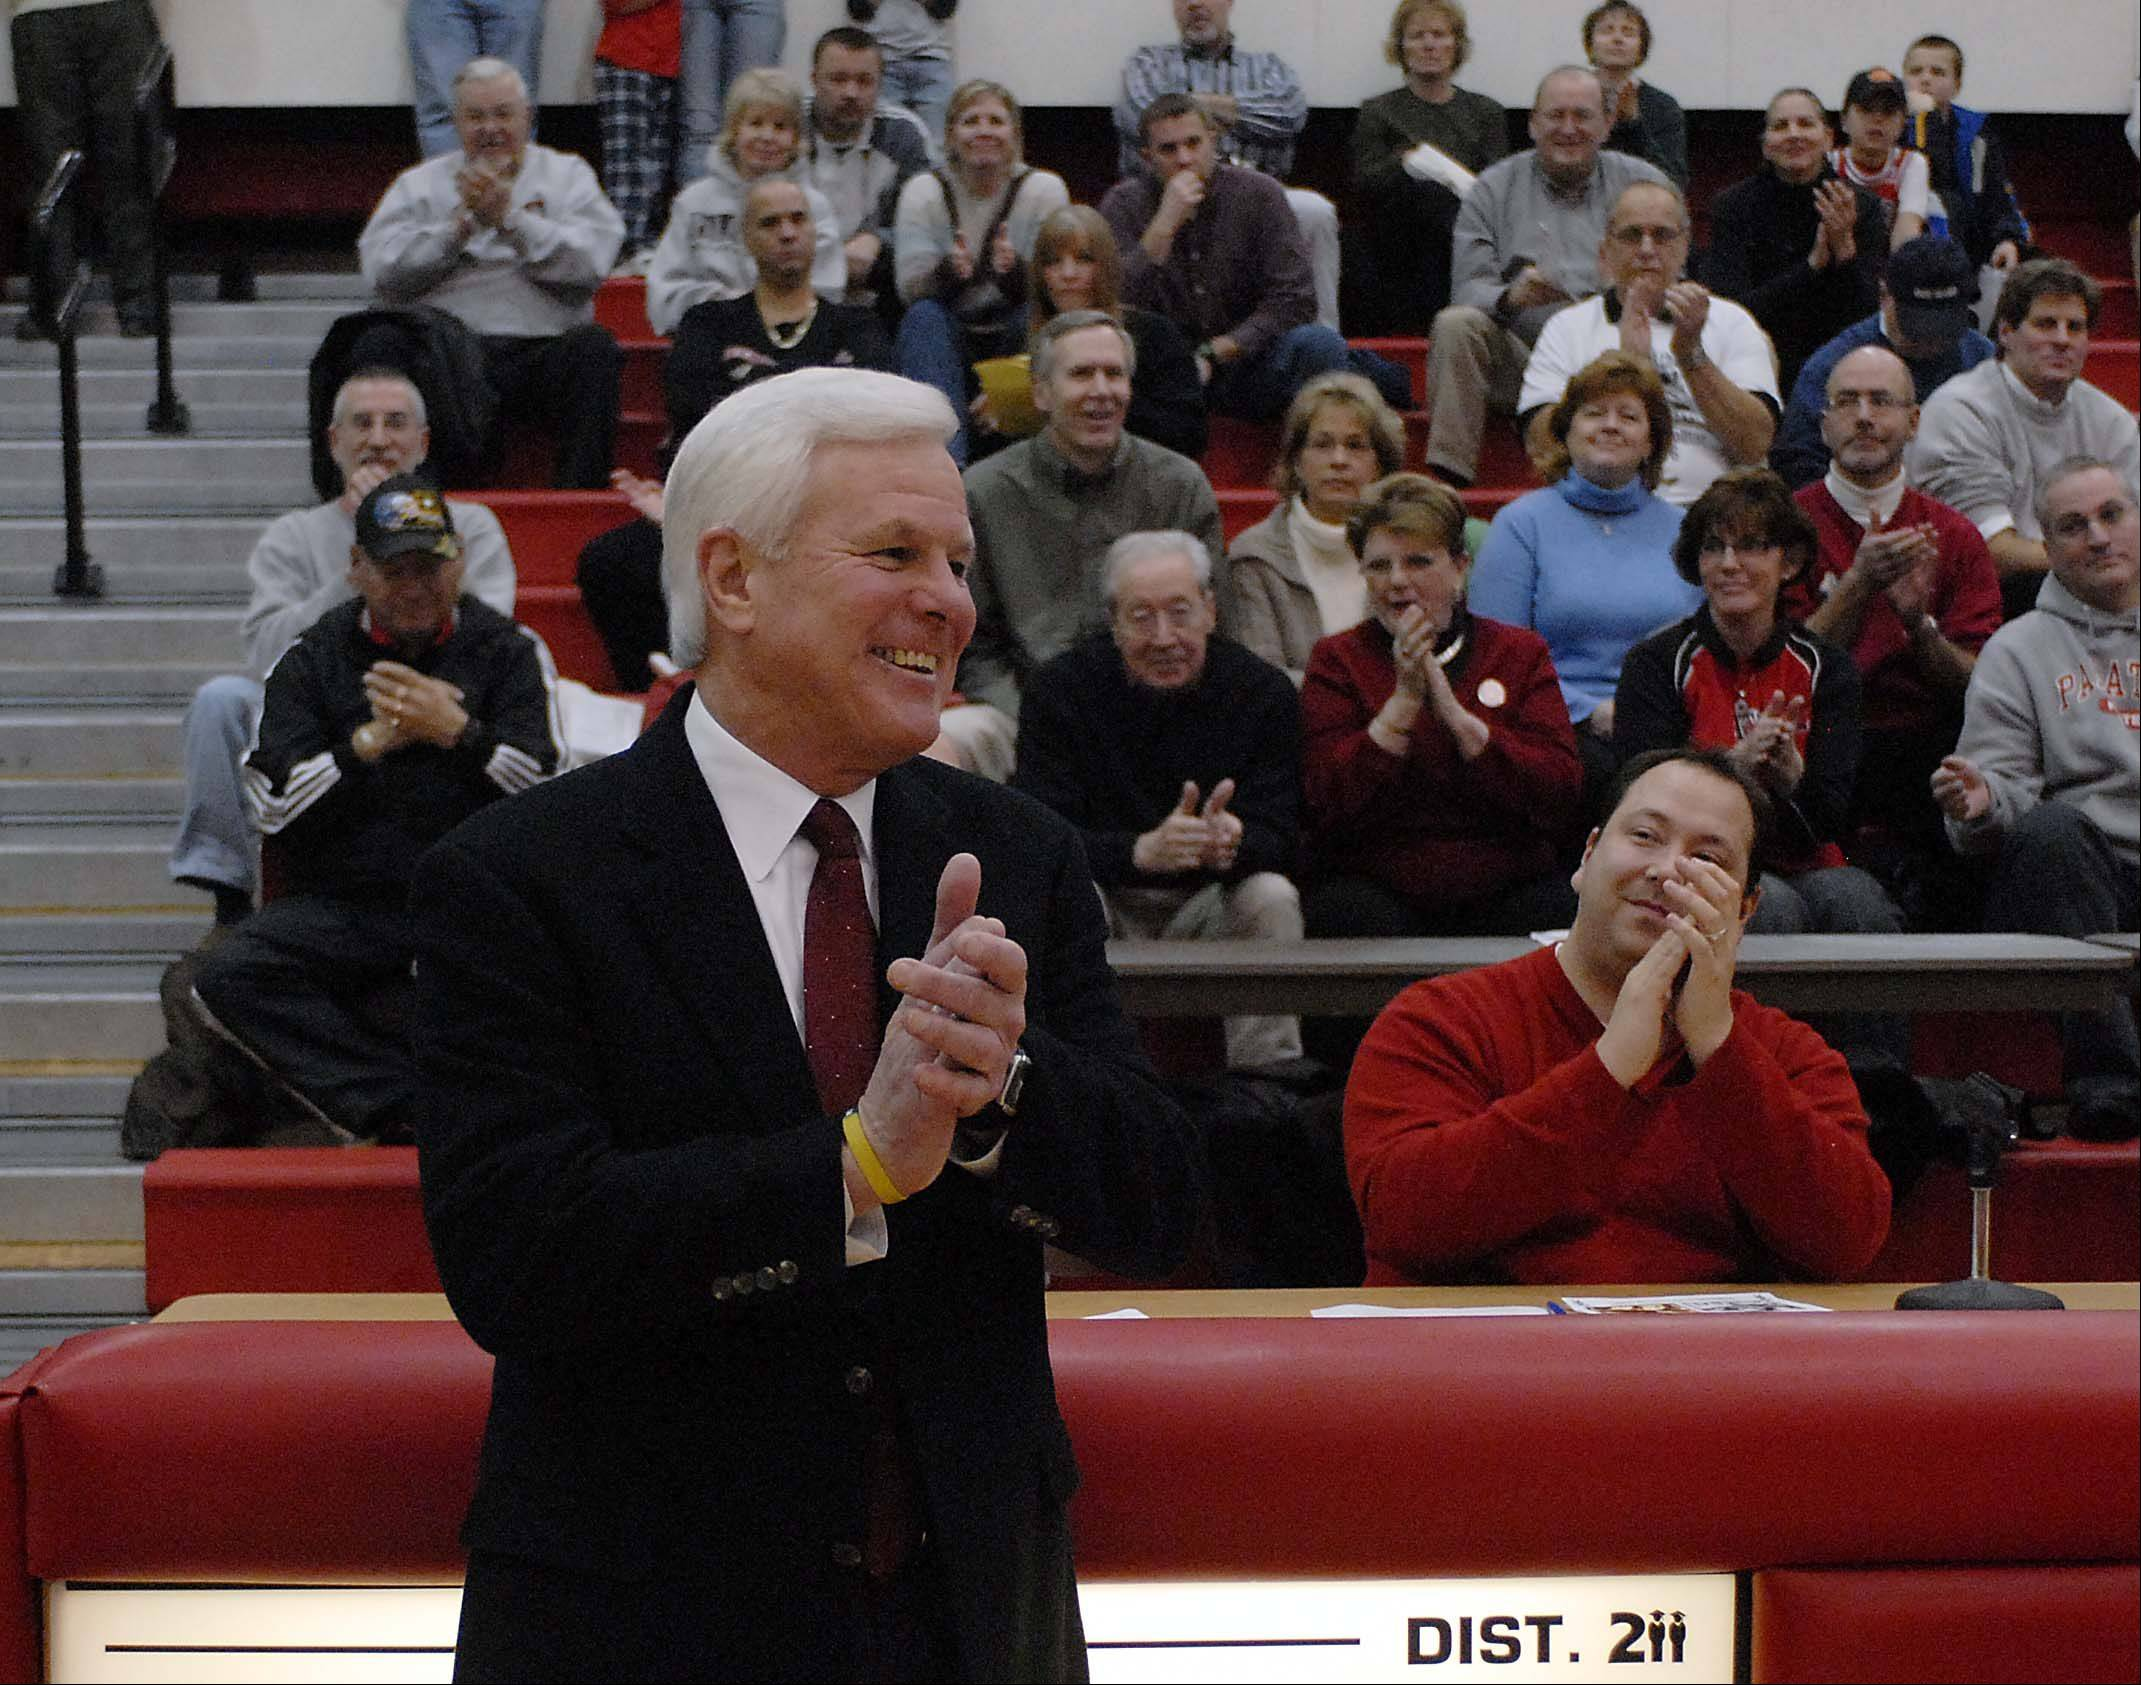 Palatine announces Hall of Fame class